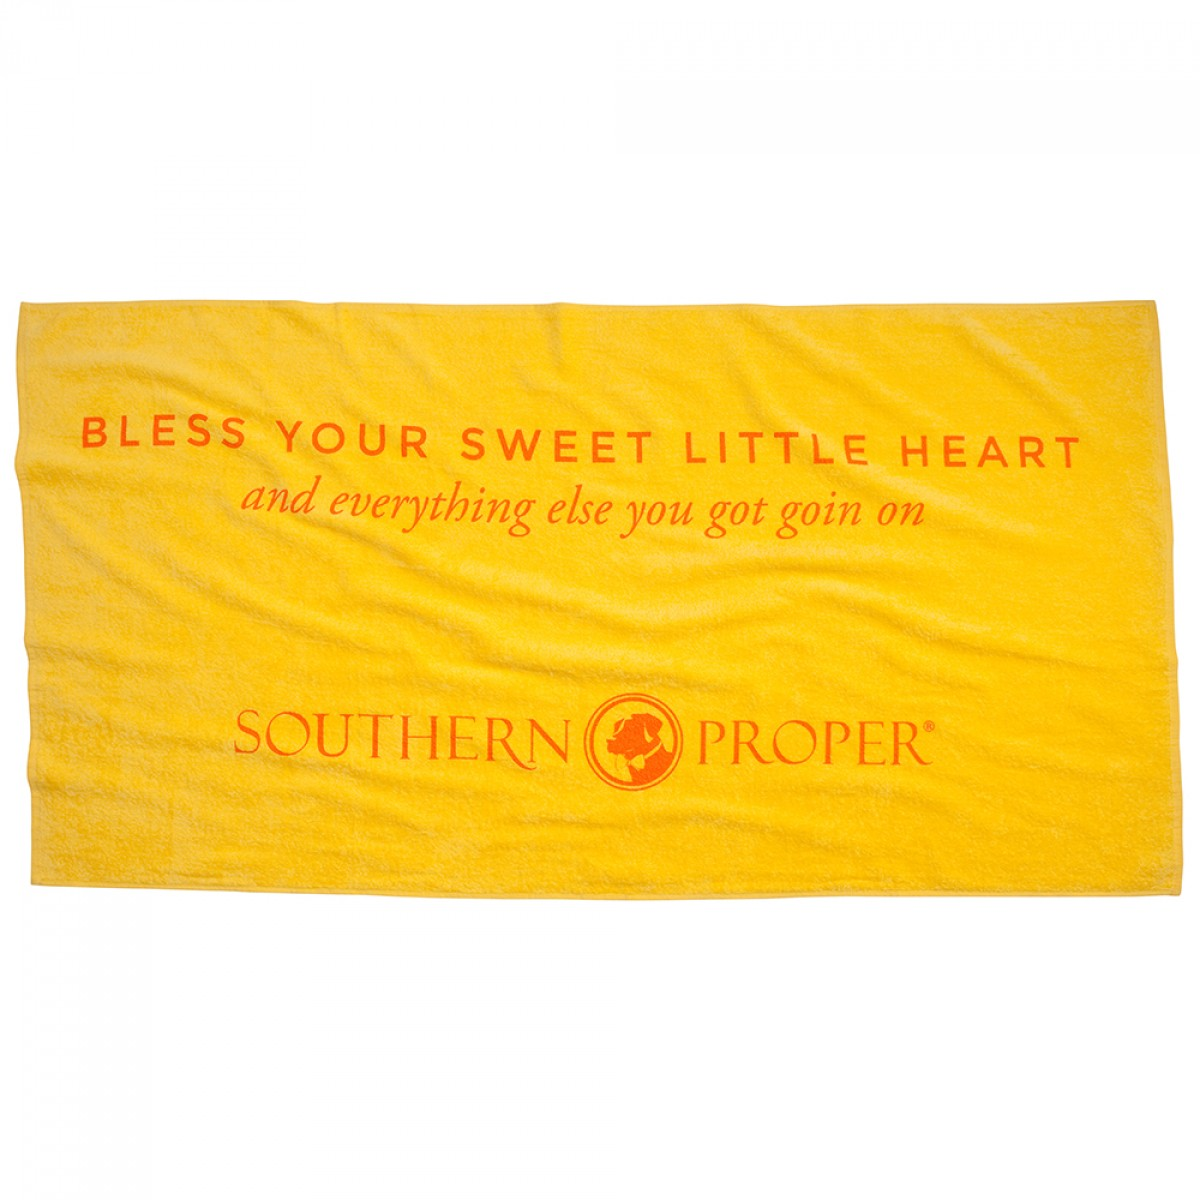 Bless Your Sweet Little Heart Beach Towel